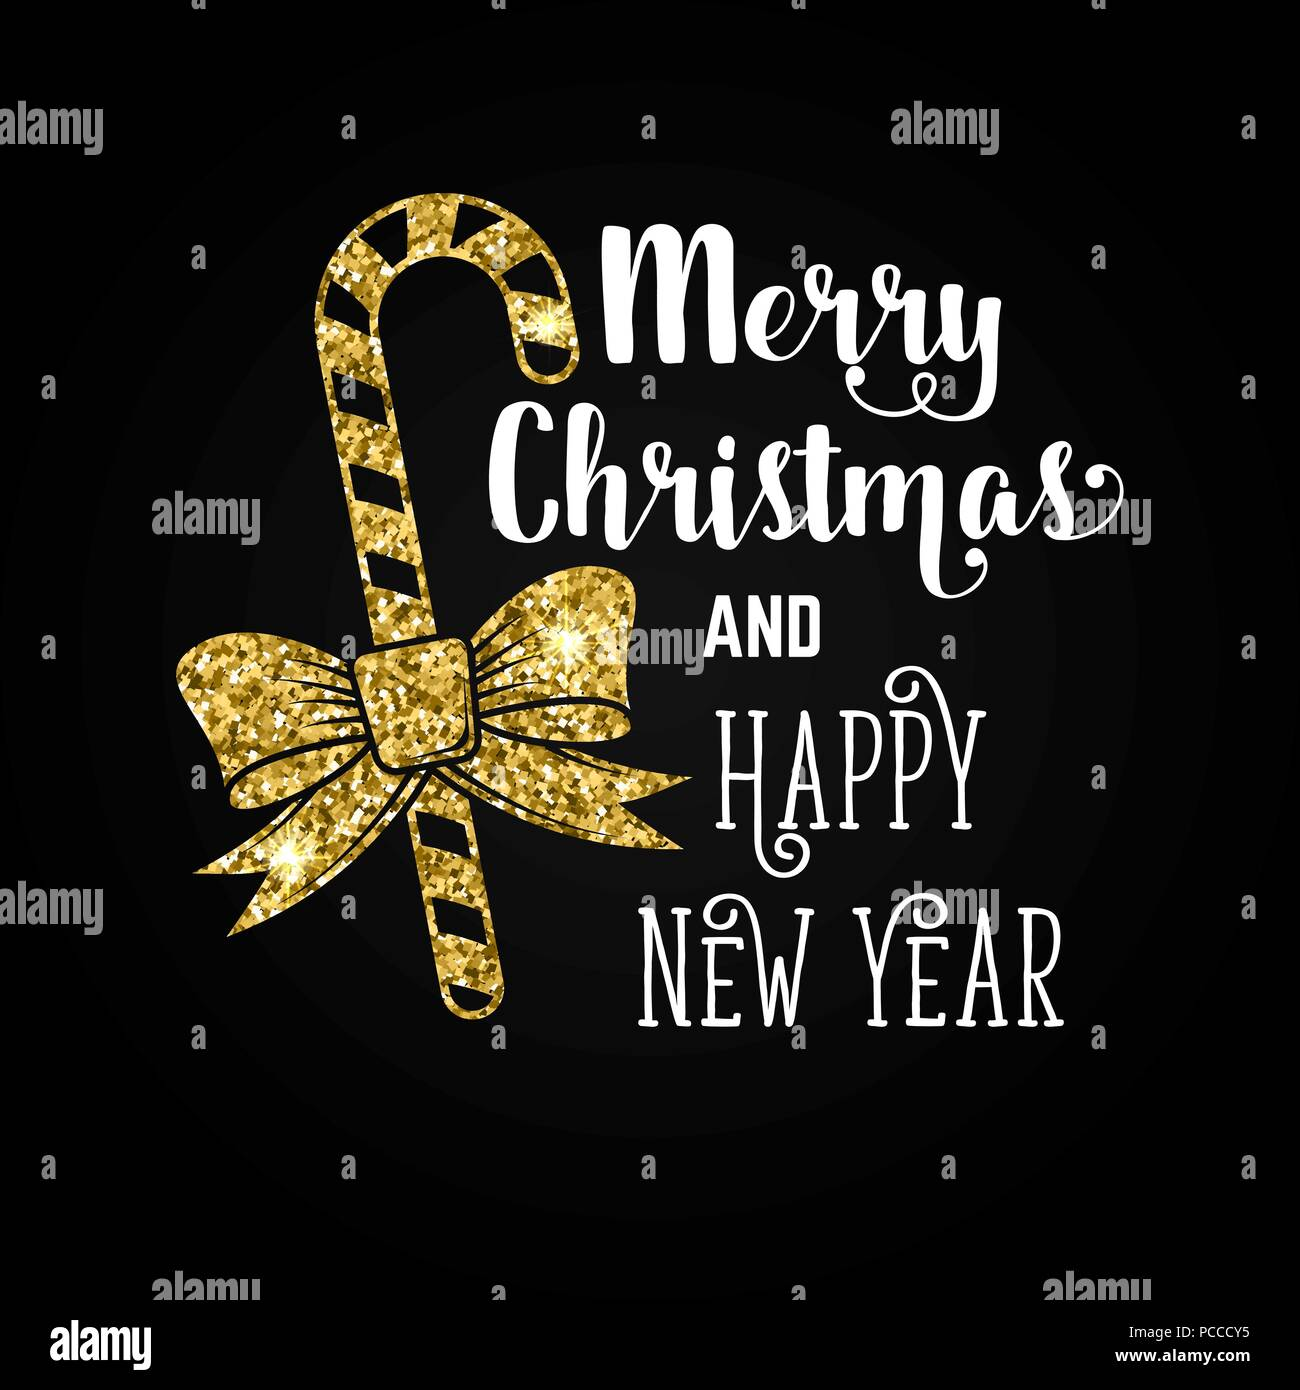 merry christmas and happy new year typography design vector